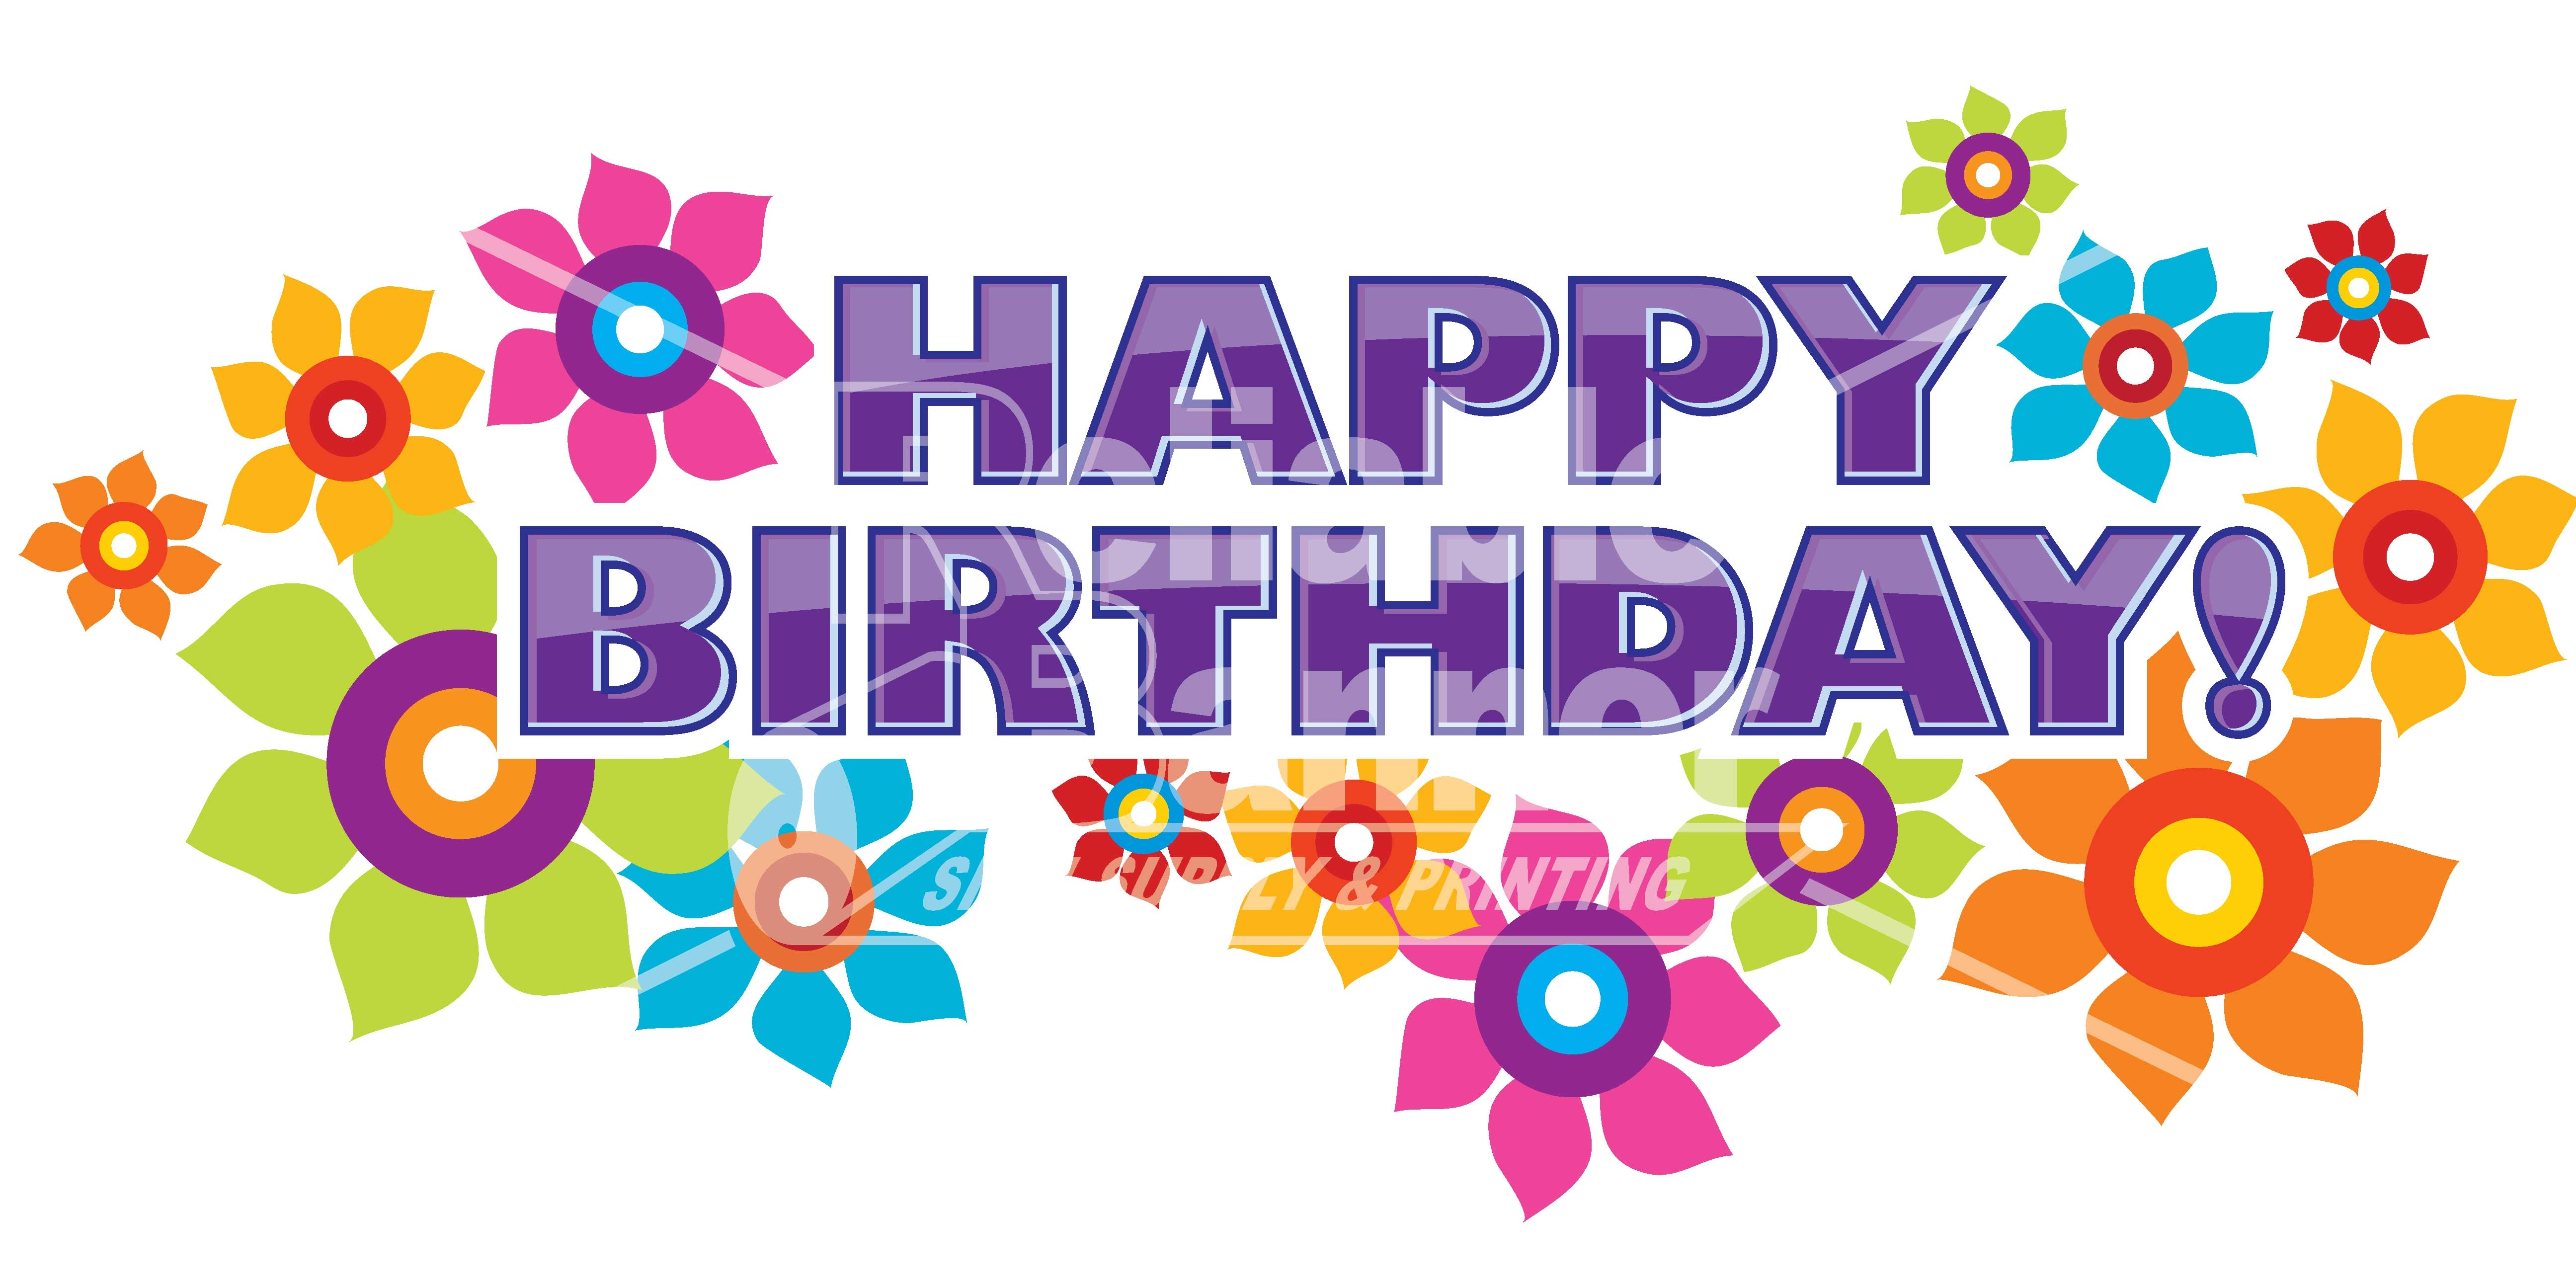 Best greetings birthday cards – StudentsChillOut